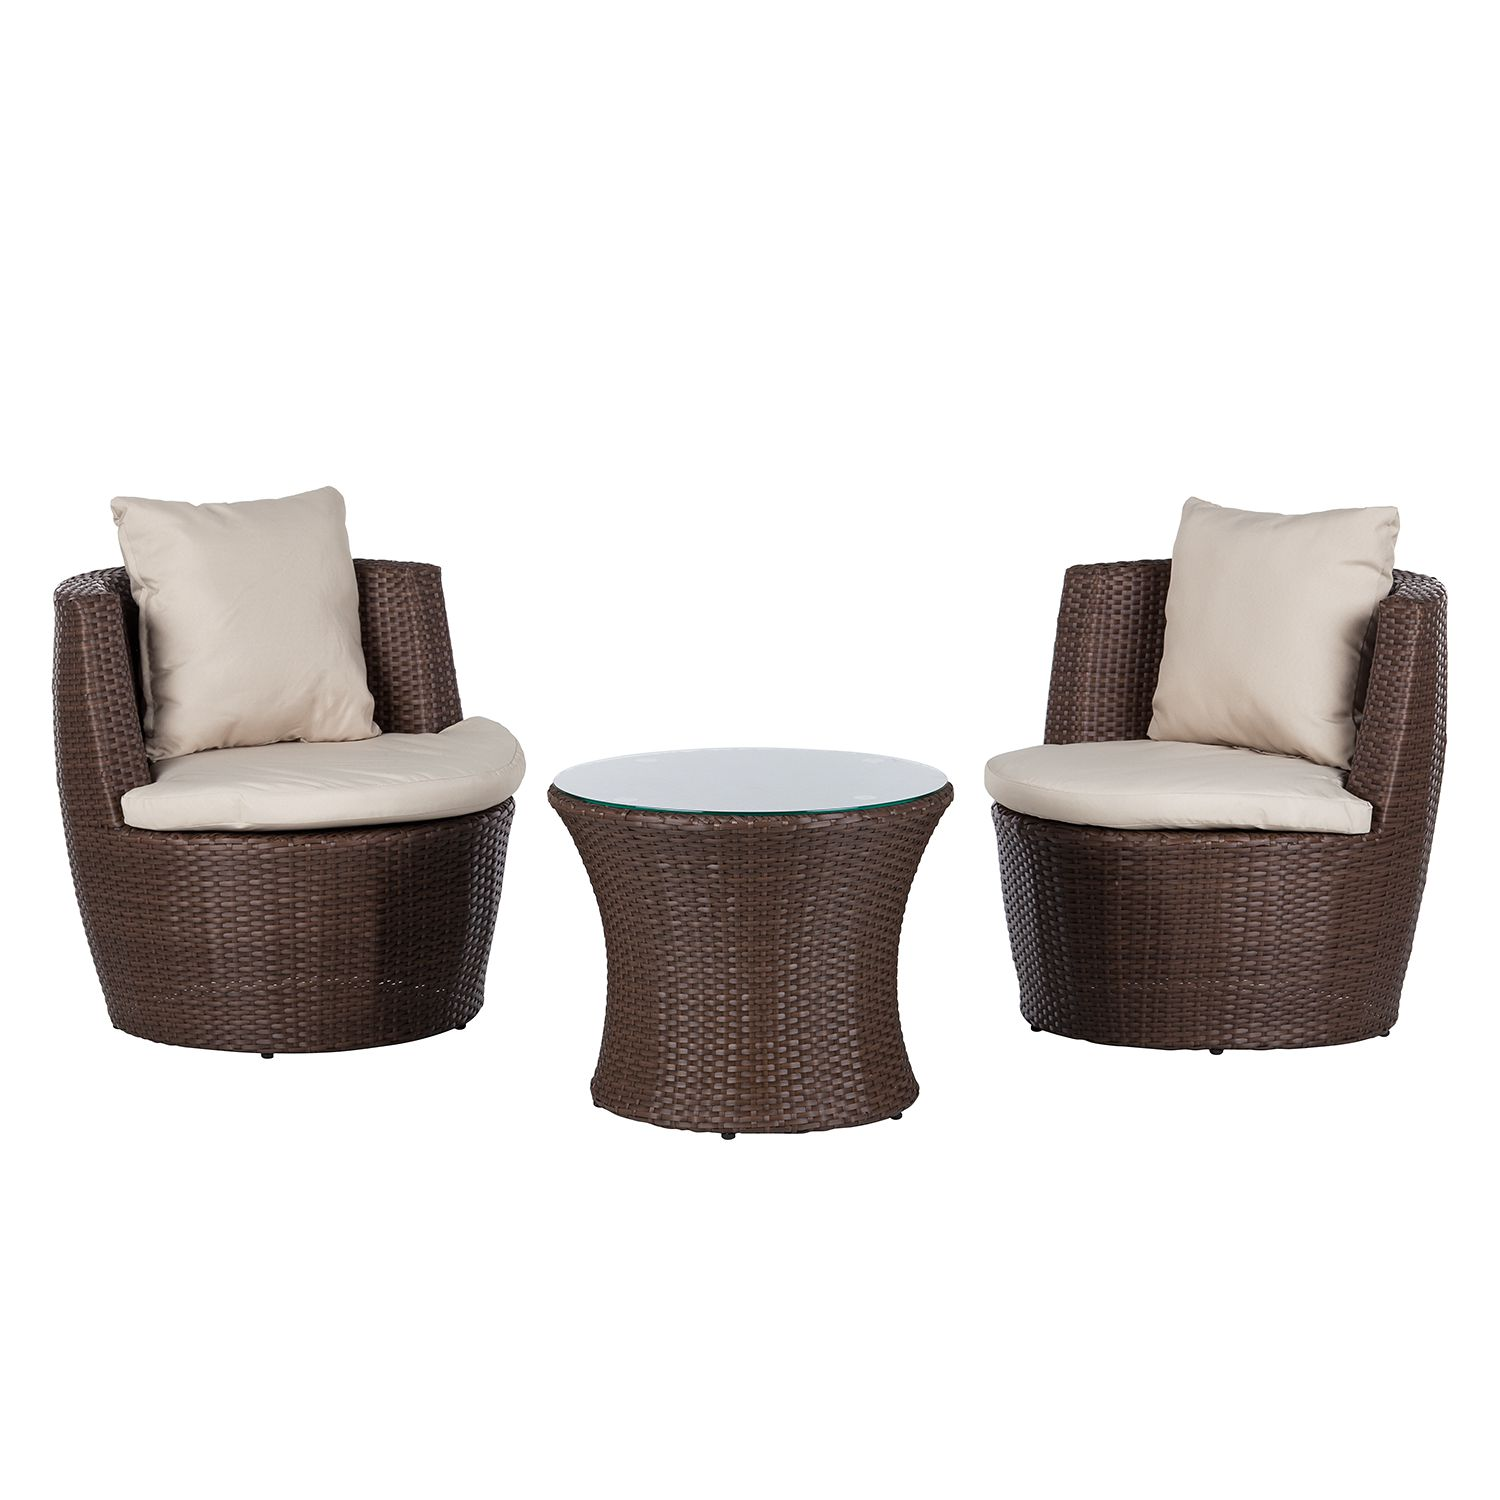 Balkon Lounge Set Allibert Lounge Set â Allibert Loungeset Monaco Graphit